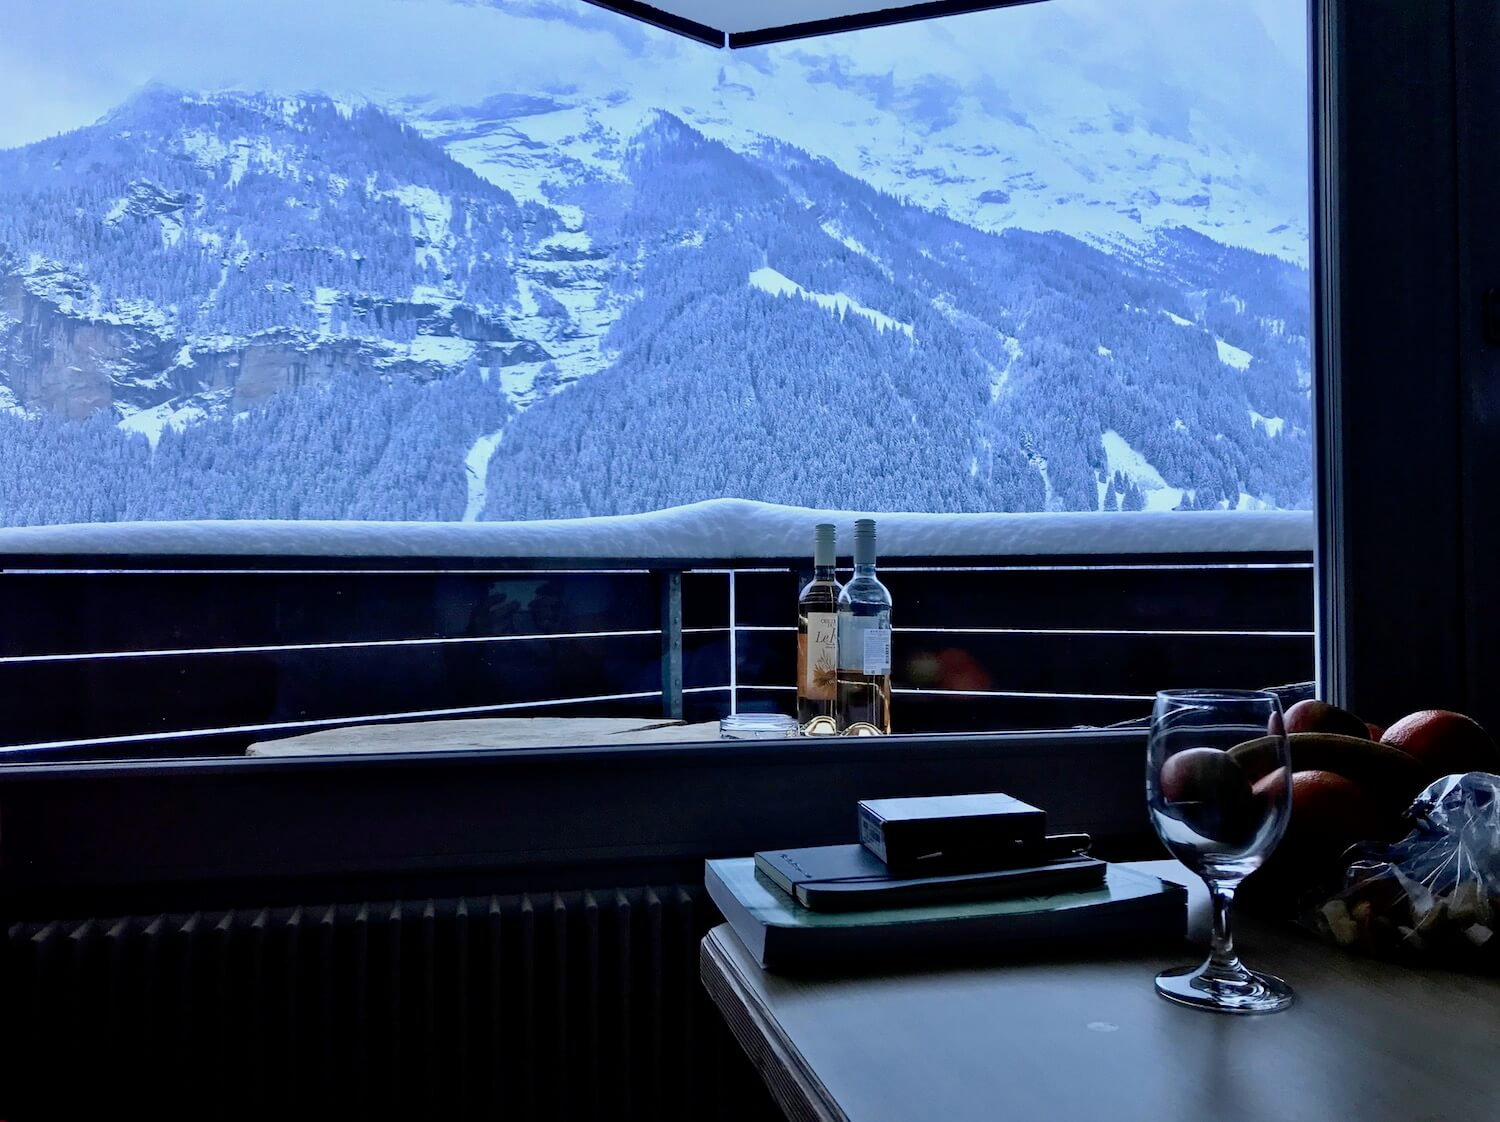 View from a hotel room at Hotel Spinne looking past a table with fruit and books to the balcony table with two bottles of wine just beneath the rail with four inches of snow. In the background is the base of Eiger (13,000ft).